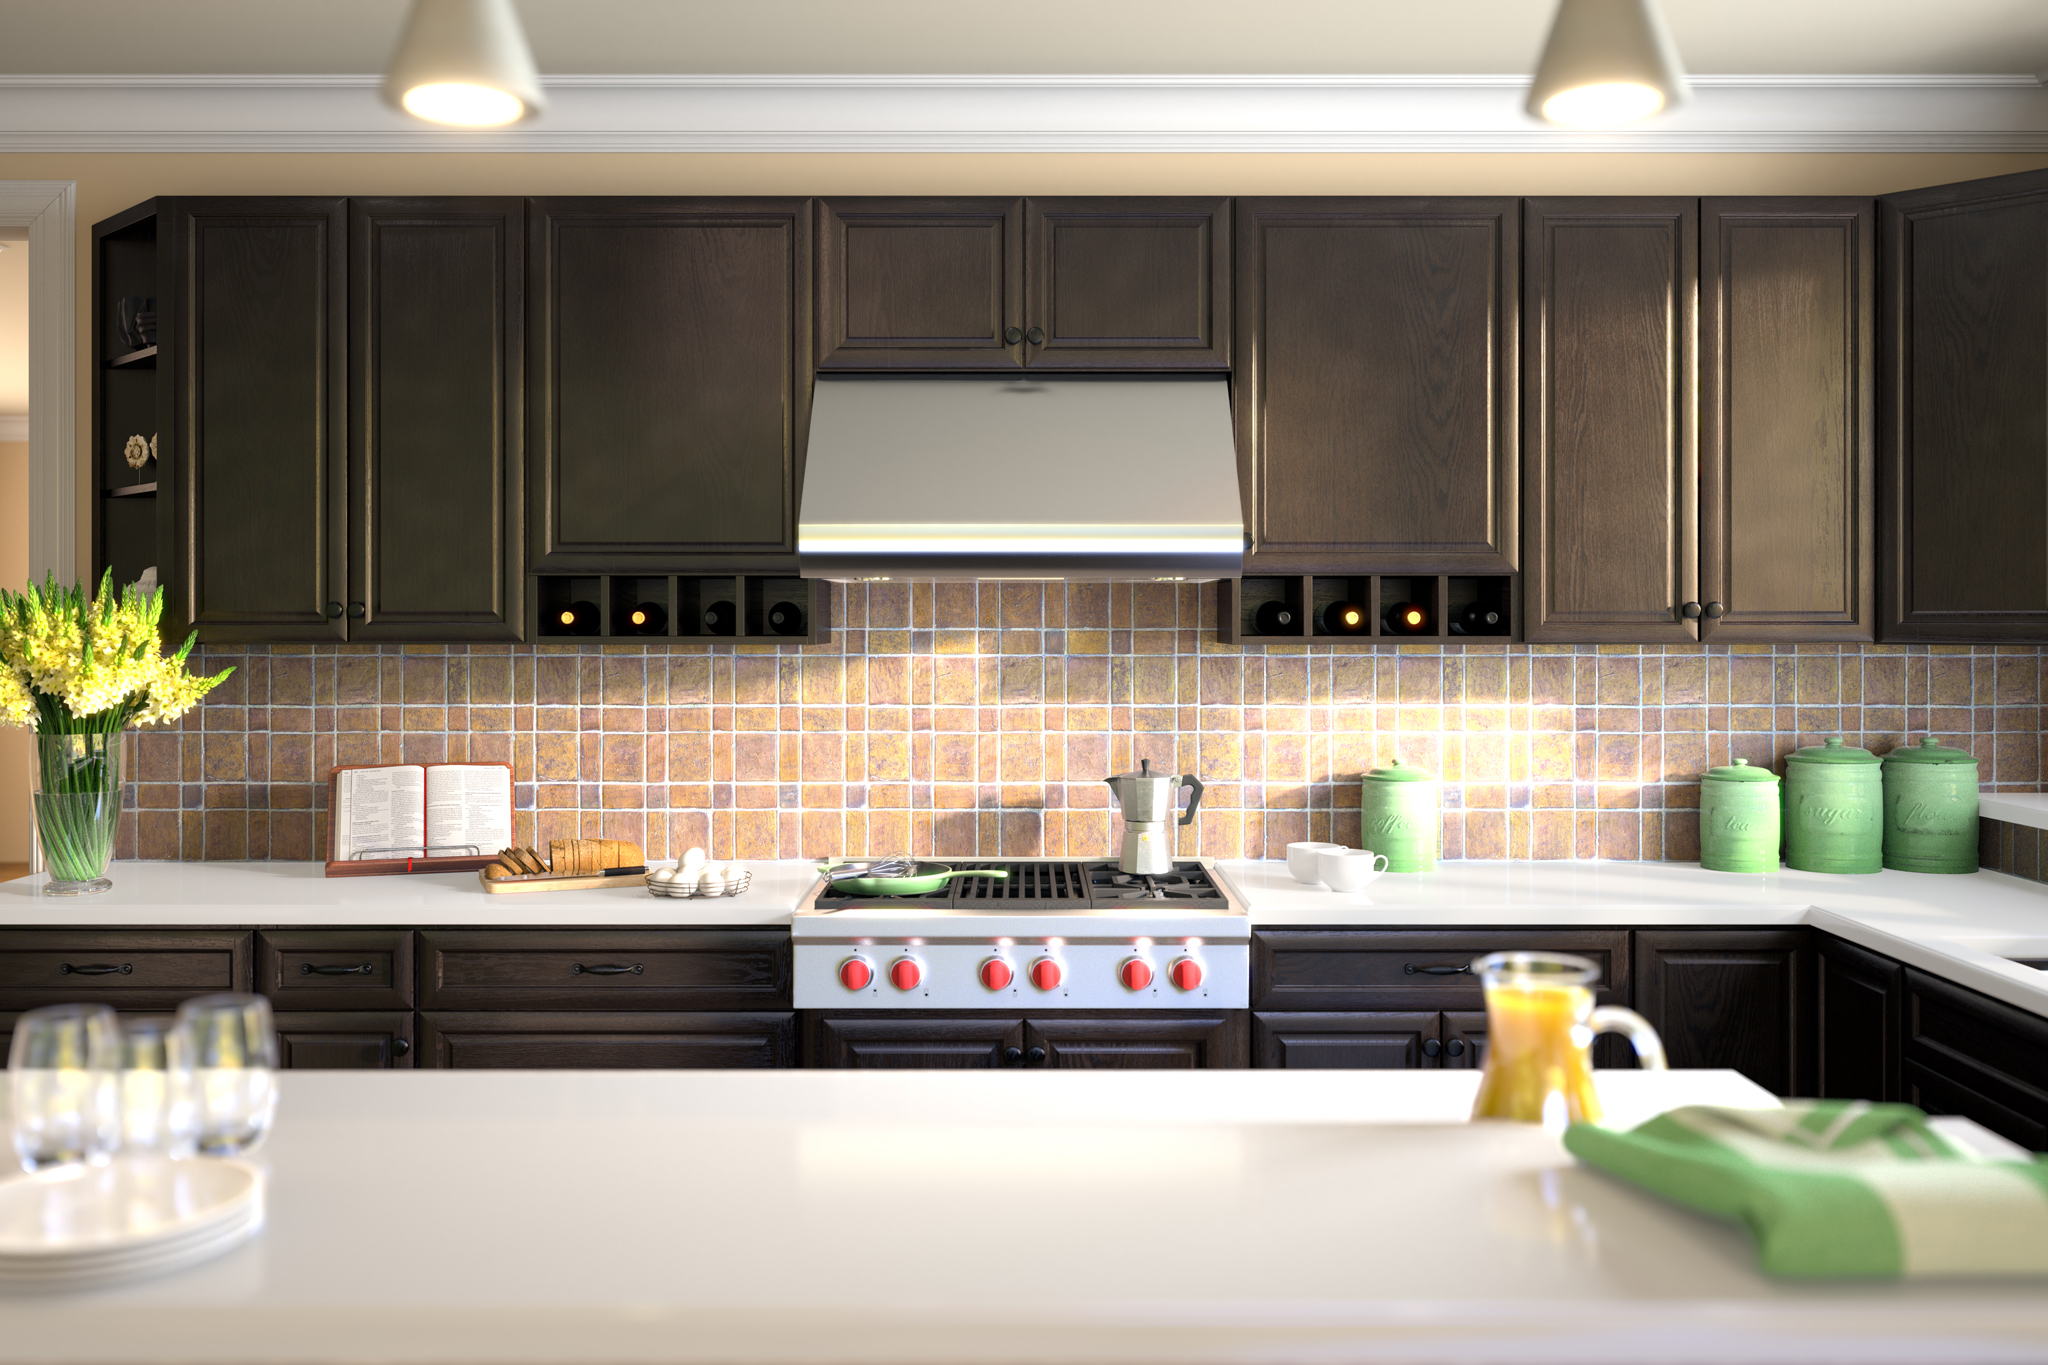 3d rendering of dark kitchen cabinetry and orange juice and eggs